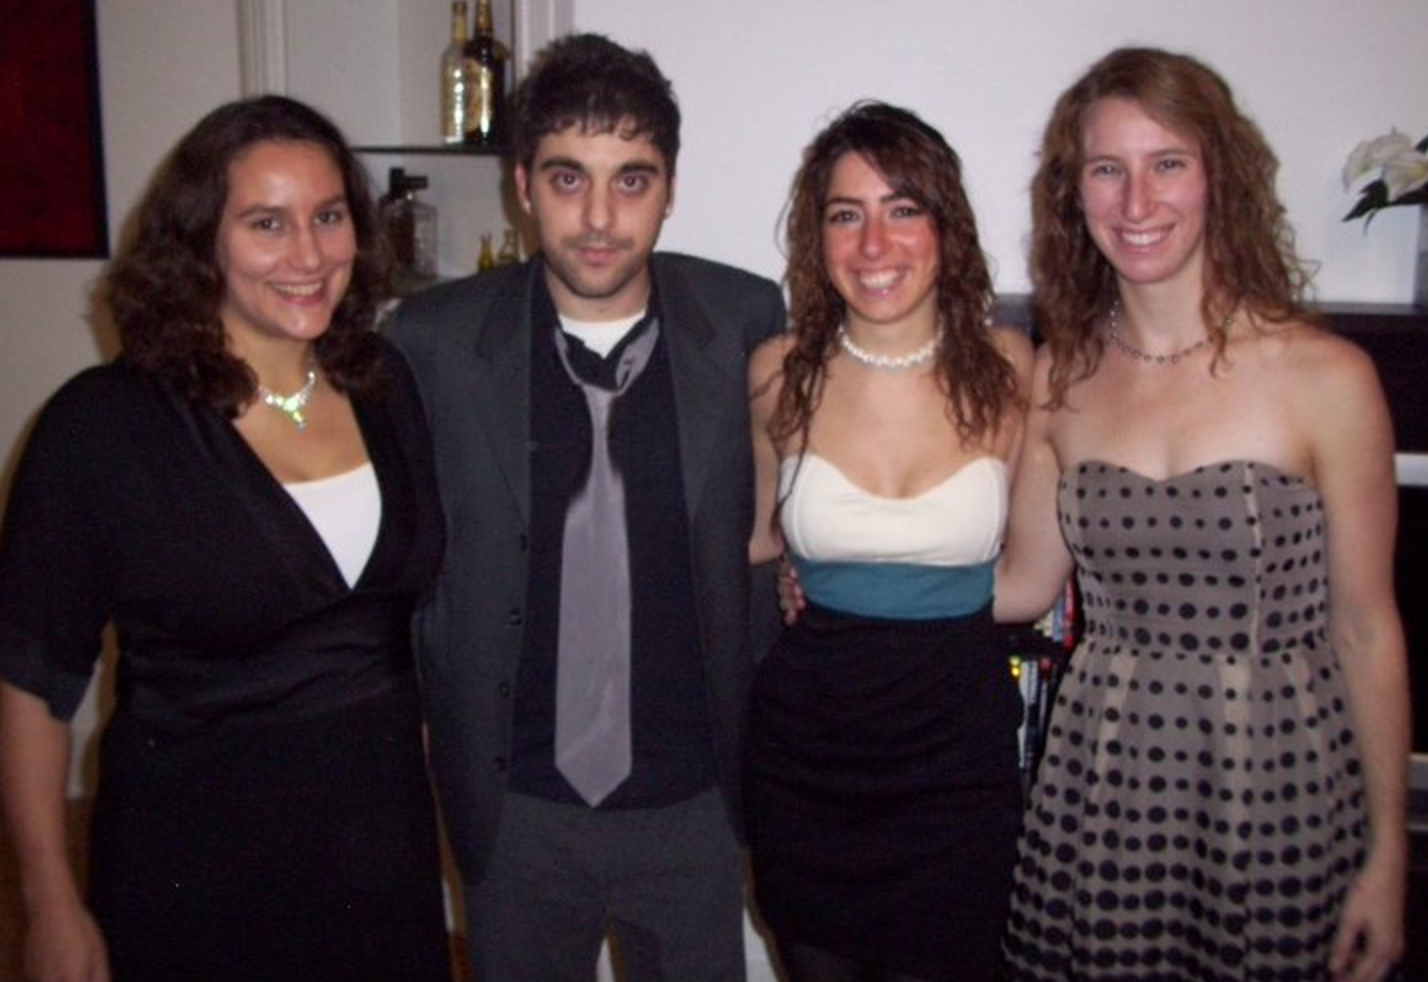 The Reenan Lab crew in a formal